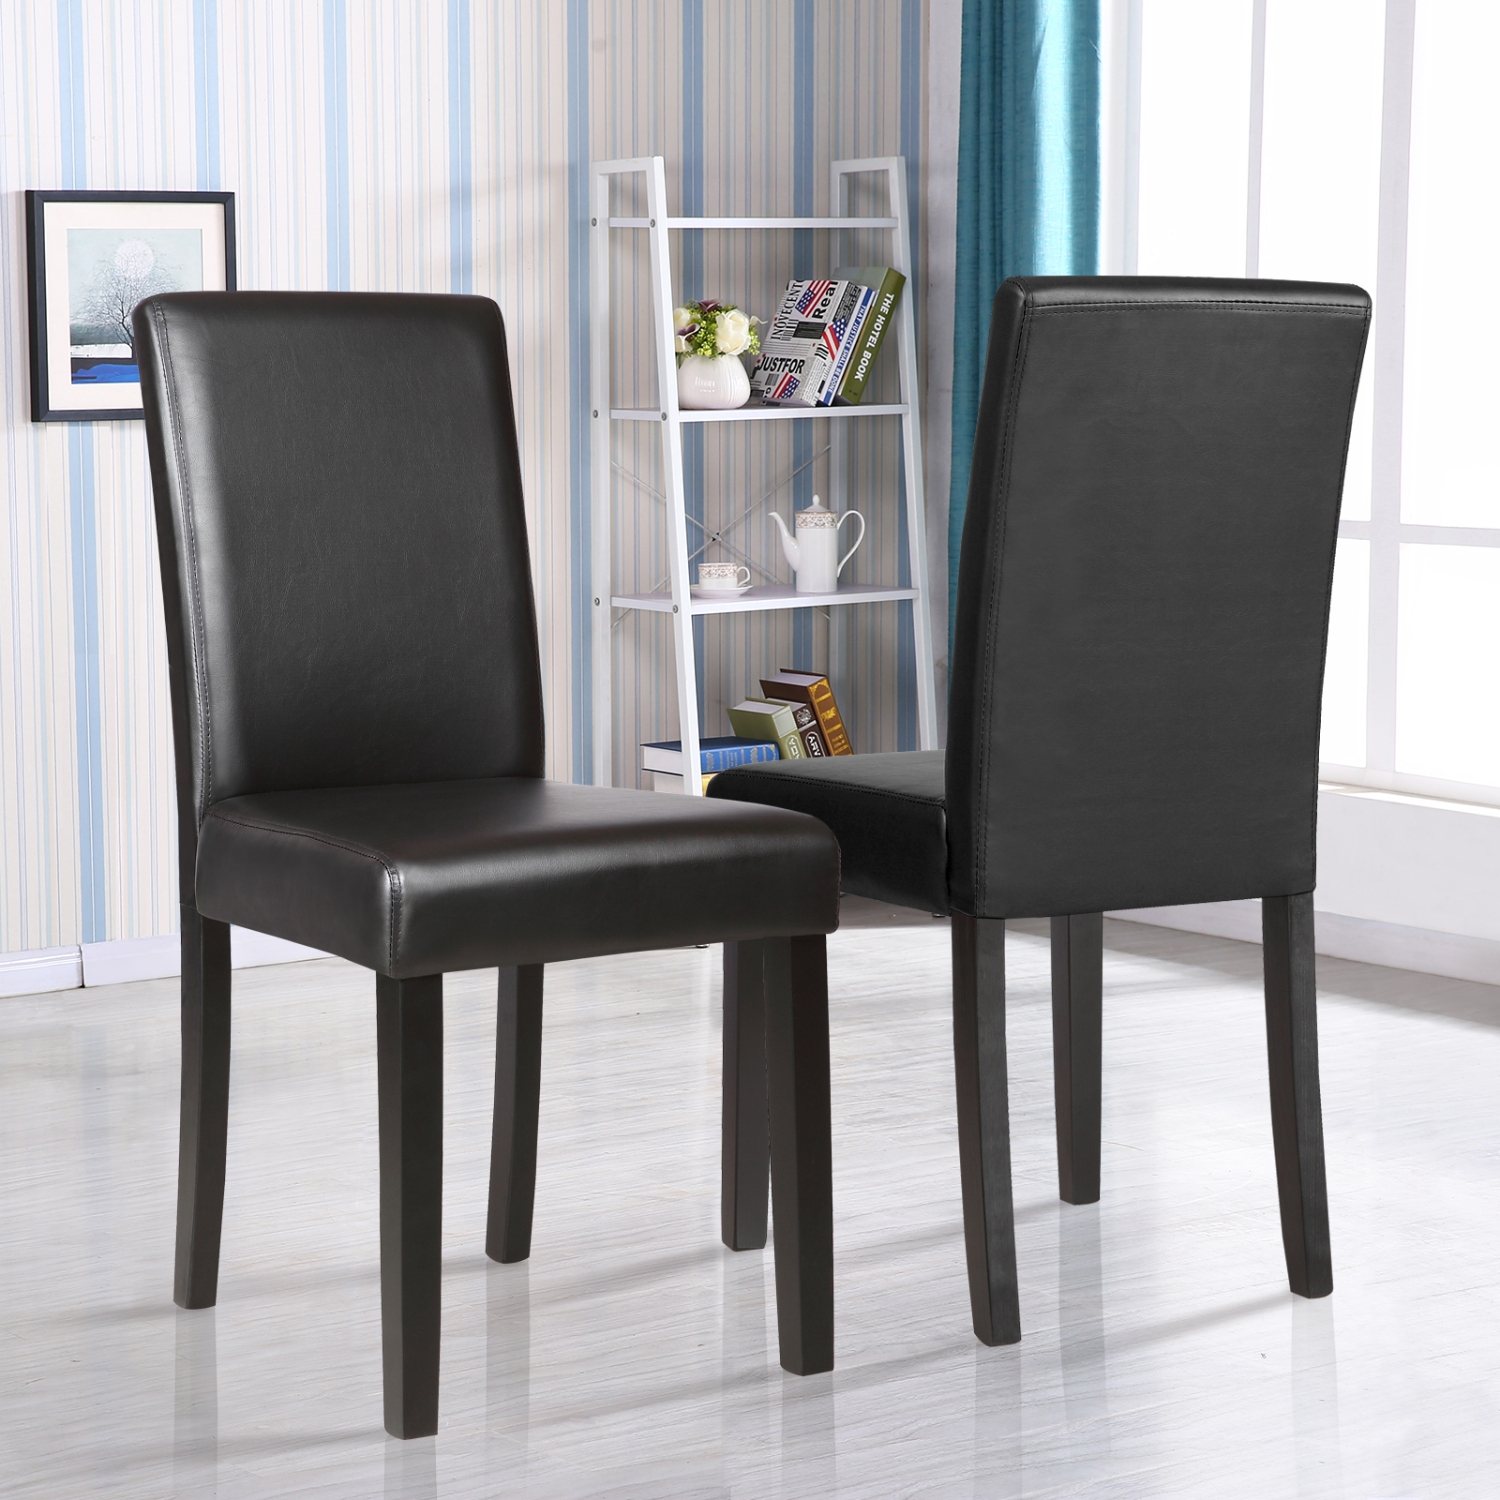 Black Leather Kitchen Chairs: Set Of 2 Kitchen Dinette Dining Room Chair Elegant Design